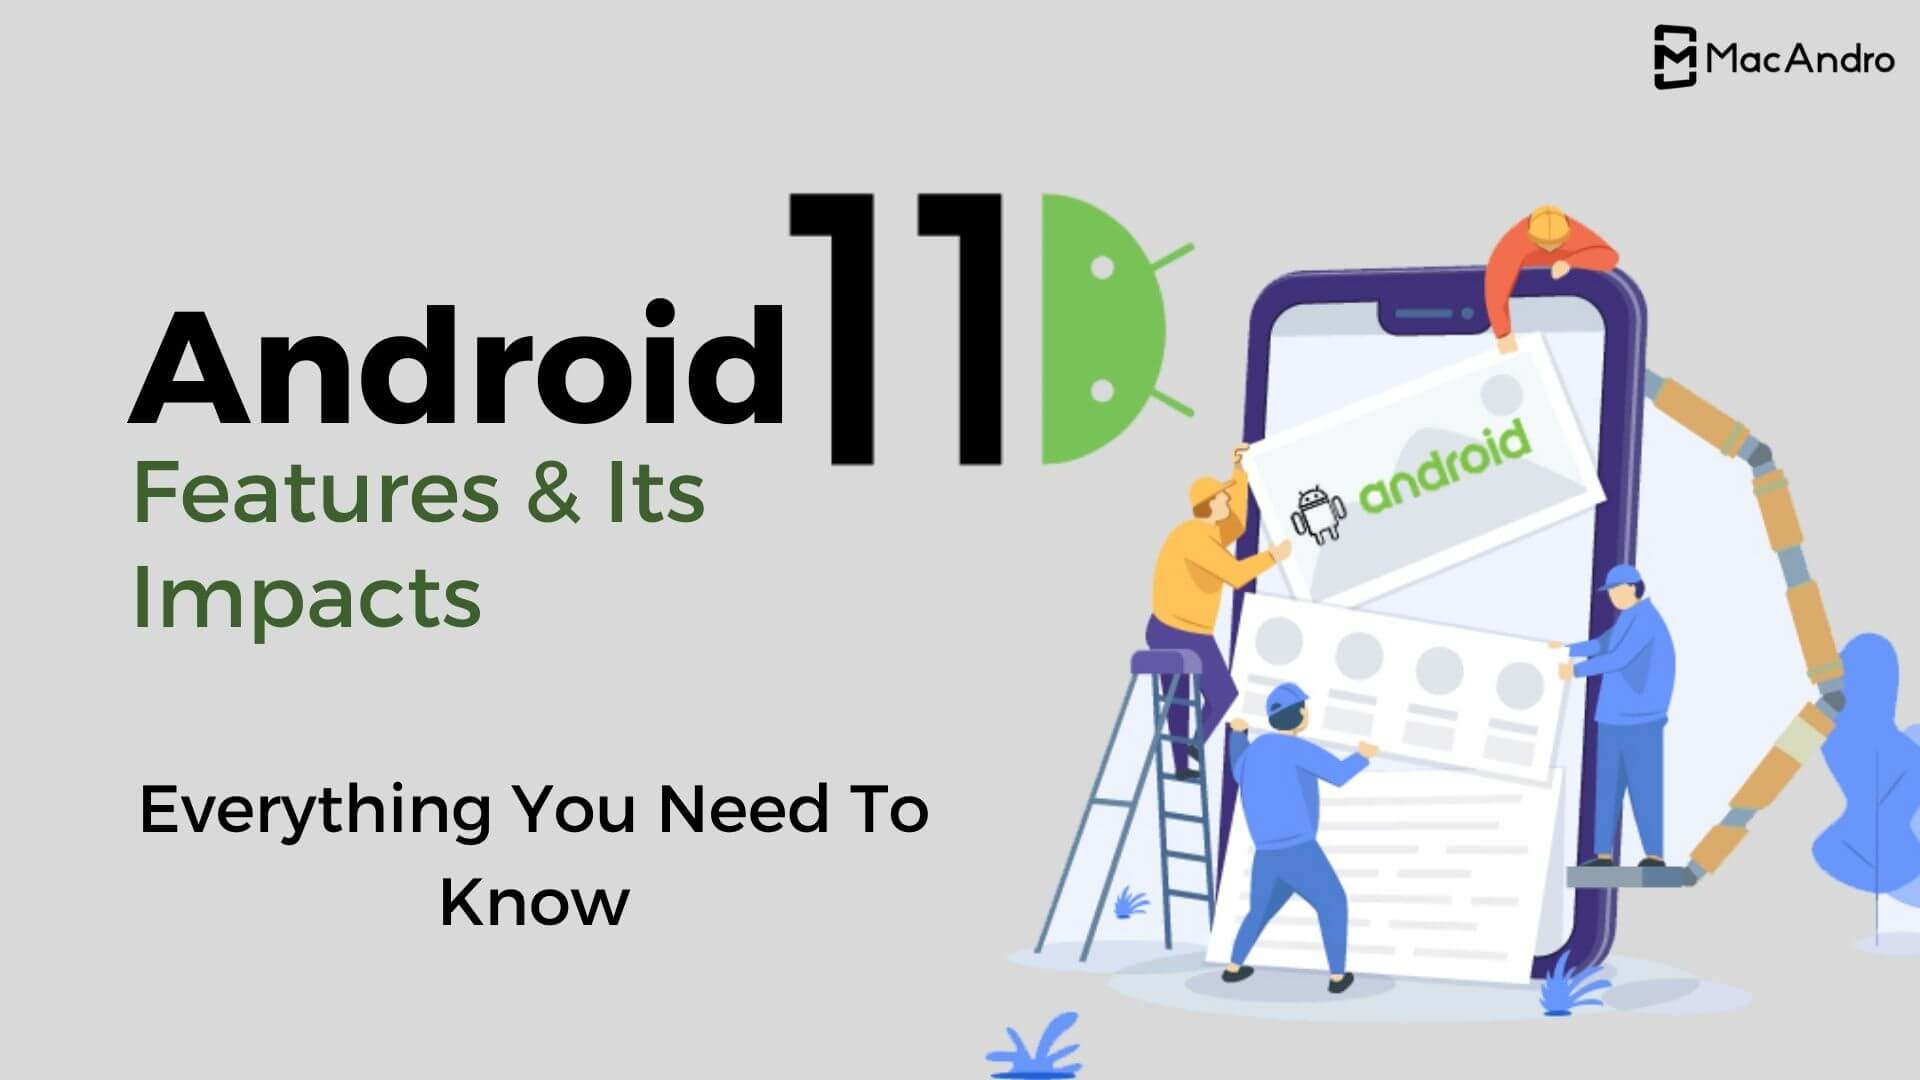 In What Ways Features of Android 11 Will Impact Your Mobile App?